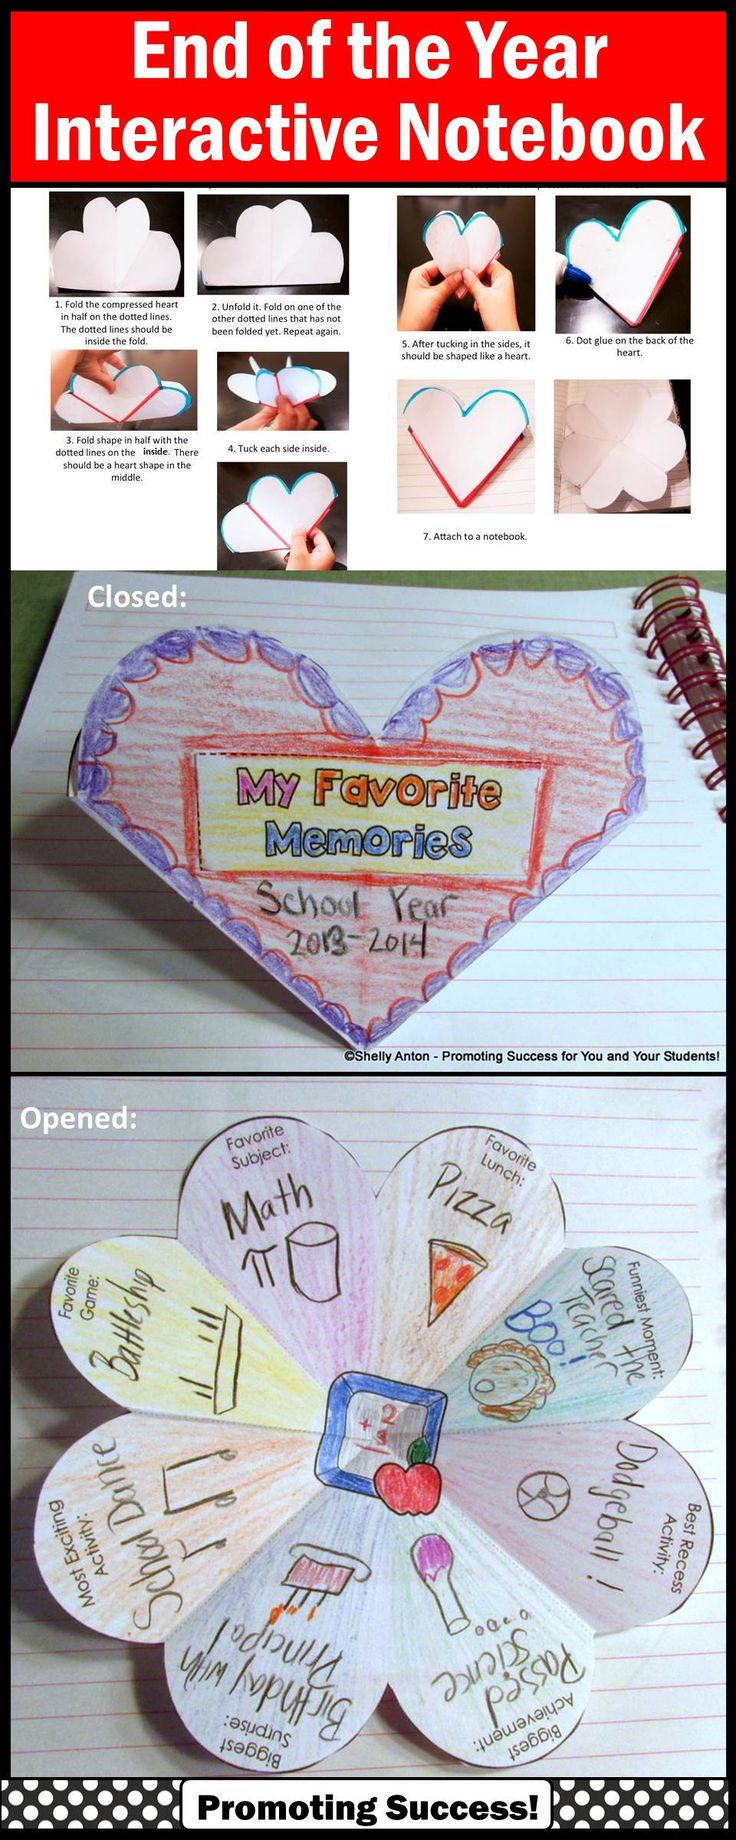 End of the year activities for multiple grade levels! Your students are going to love sharing memories with this interactive notebook activity! You will love its flexibility. The are several variations of the ONE template, including open-ended options to meet the individual needs of all your students. This activity works well year after year for multiple grade levels! https://www.teacherspayteachers.com/Product/End-of-the-Year-1246529